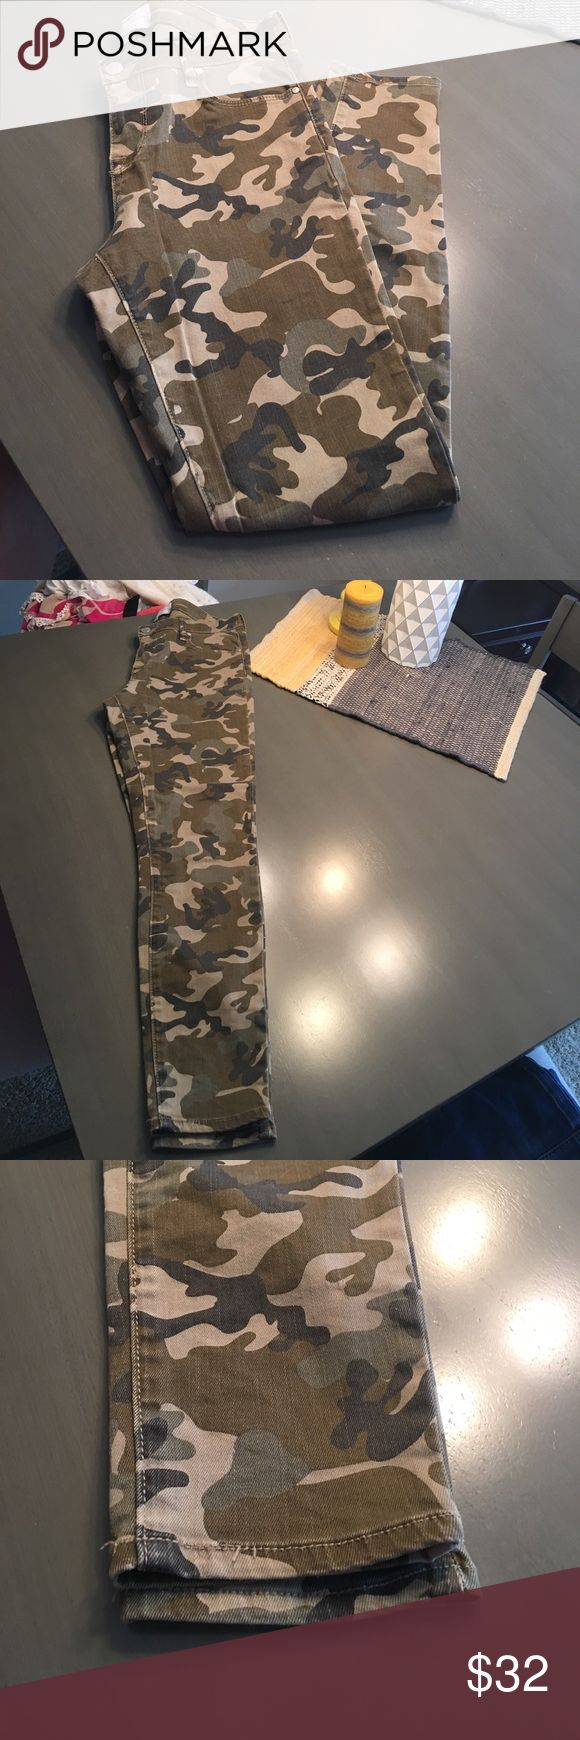 Kendall & Kylie Jeans camouflaged size 27 Kendall & Kylie camouflage skinny jeans  size 27 so cute. Only worn cpl times. Smoke free home. No holes rips or tears. In great almost perfect condition thanks for looking. Kendall & Kylie Jeans Skinny